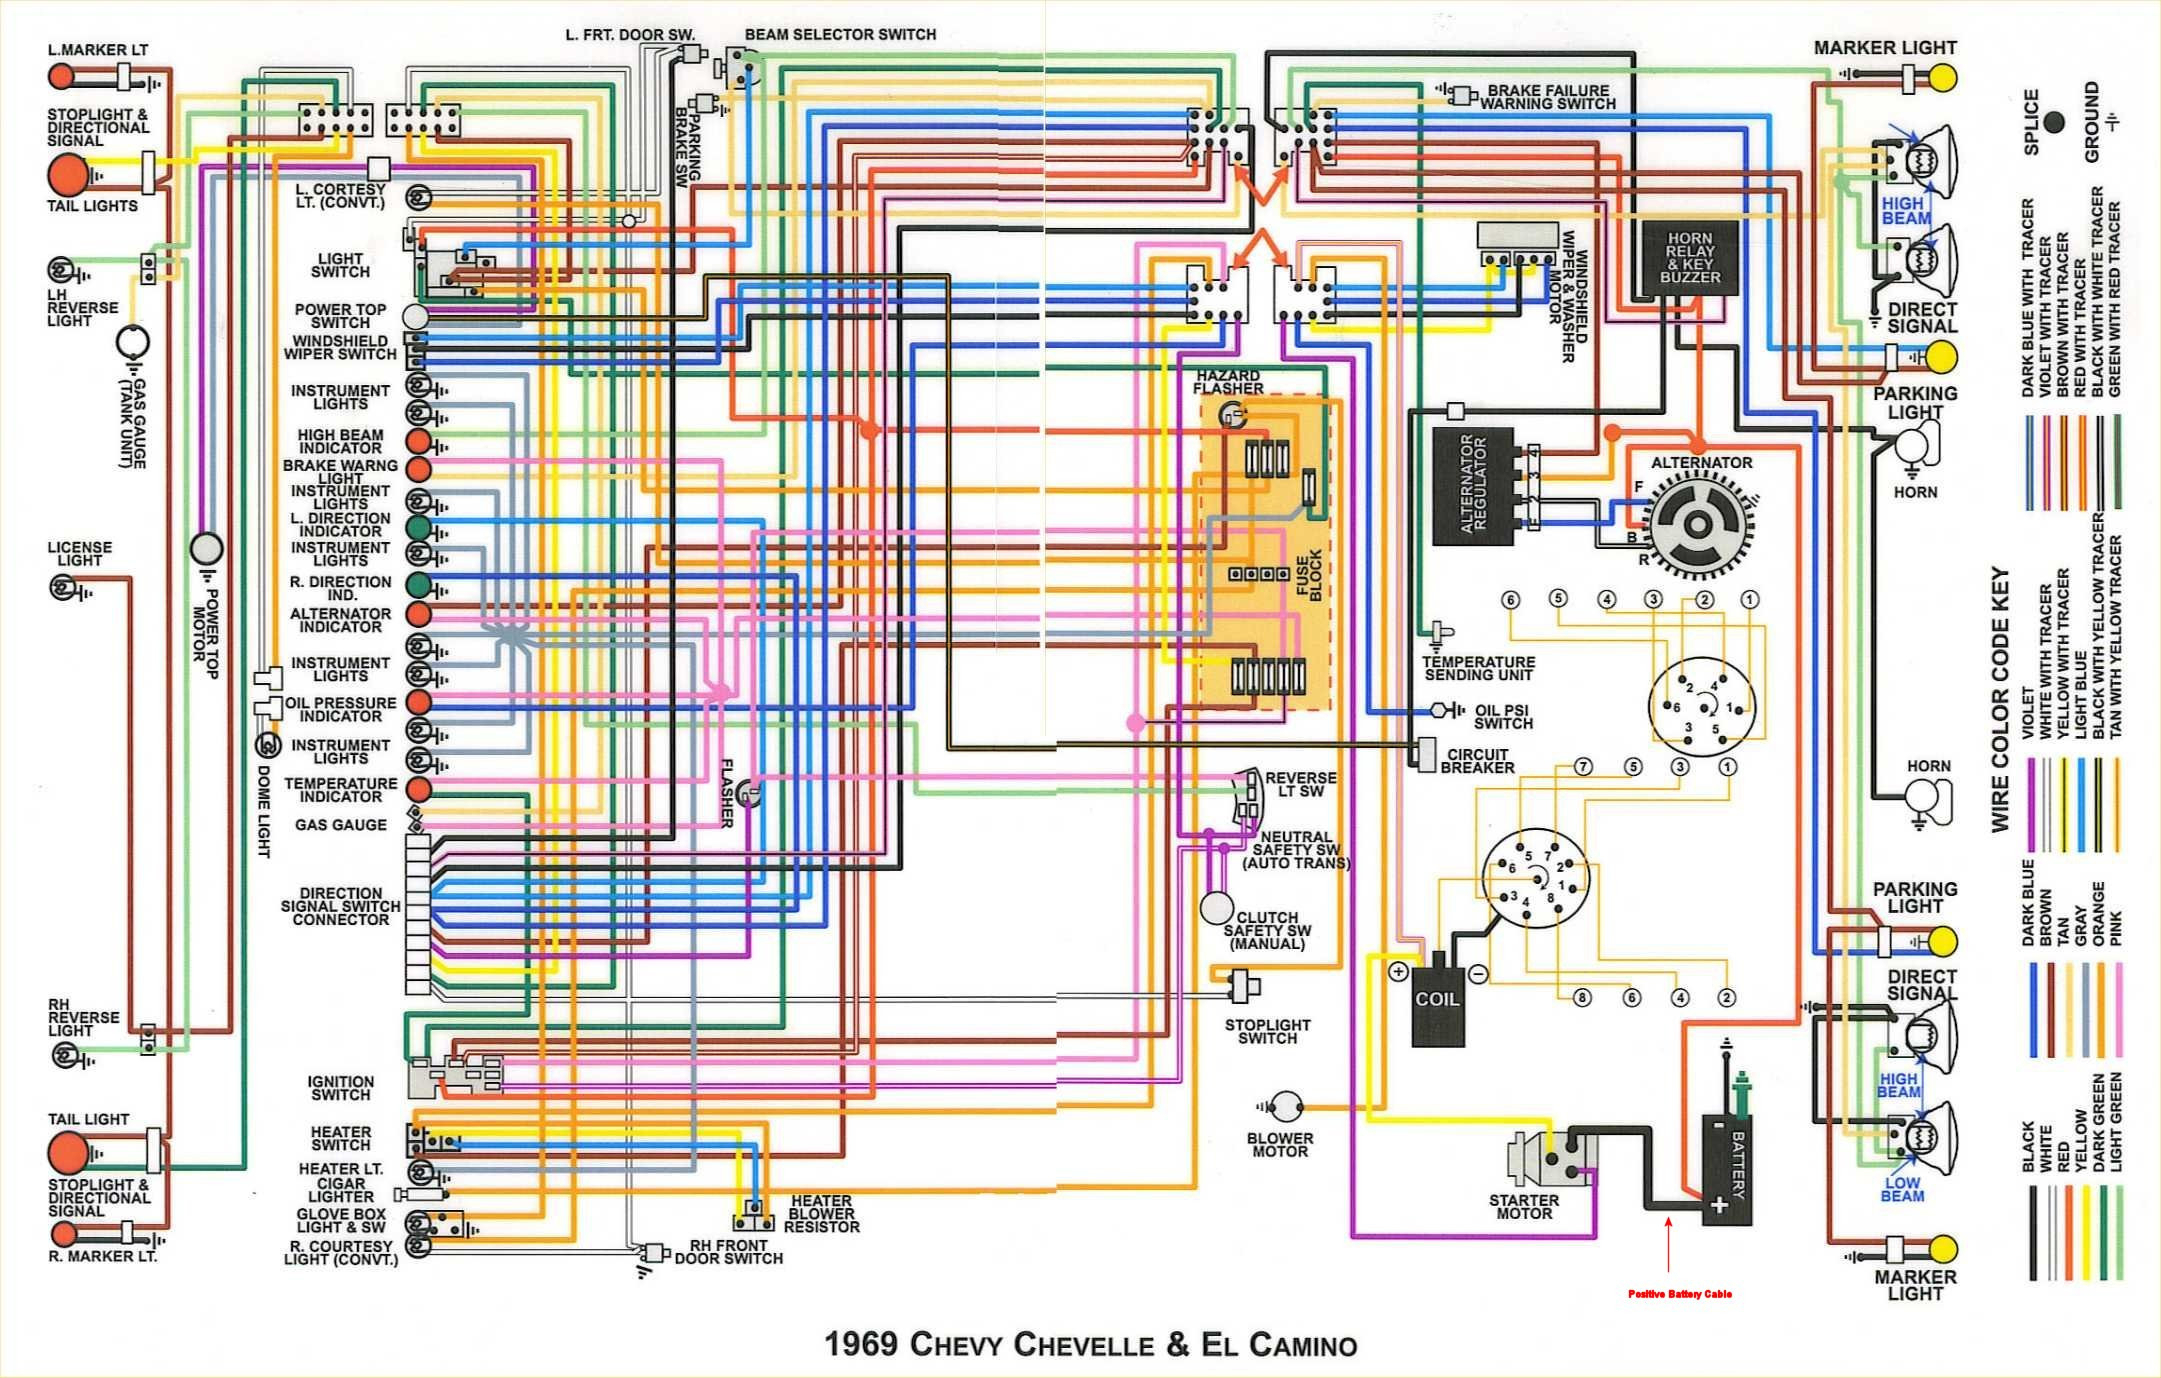 1969 chevelle wiring diagram Collection-1969 chevelle wiring diagram Download Need 1969 Wiring Diagram Chevelle Tech 17 h 14-b